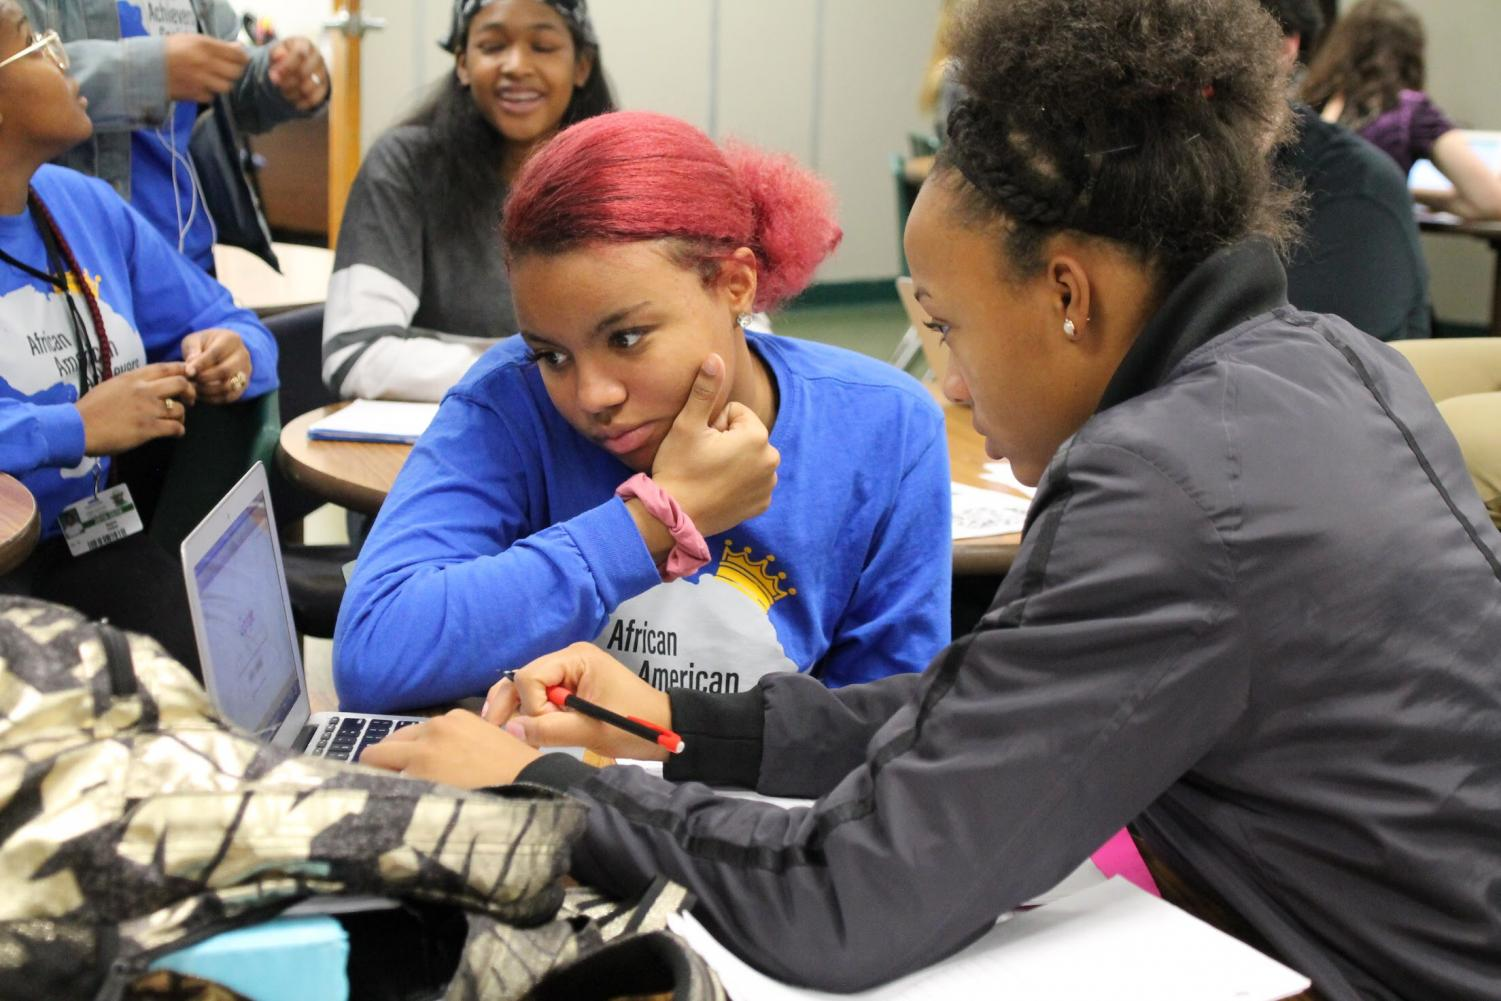 Students study for their exams during Triple A's Finals Frenzy event on Dec. 12.